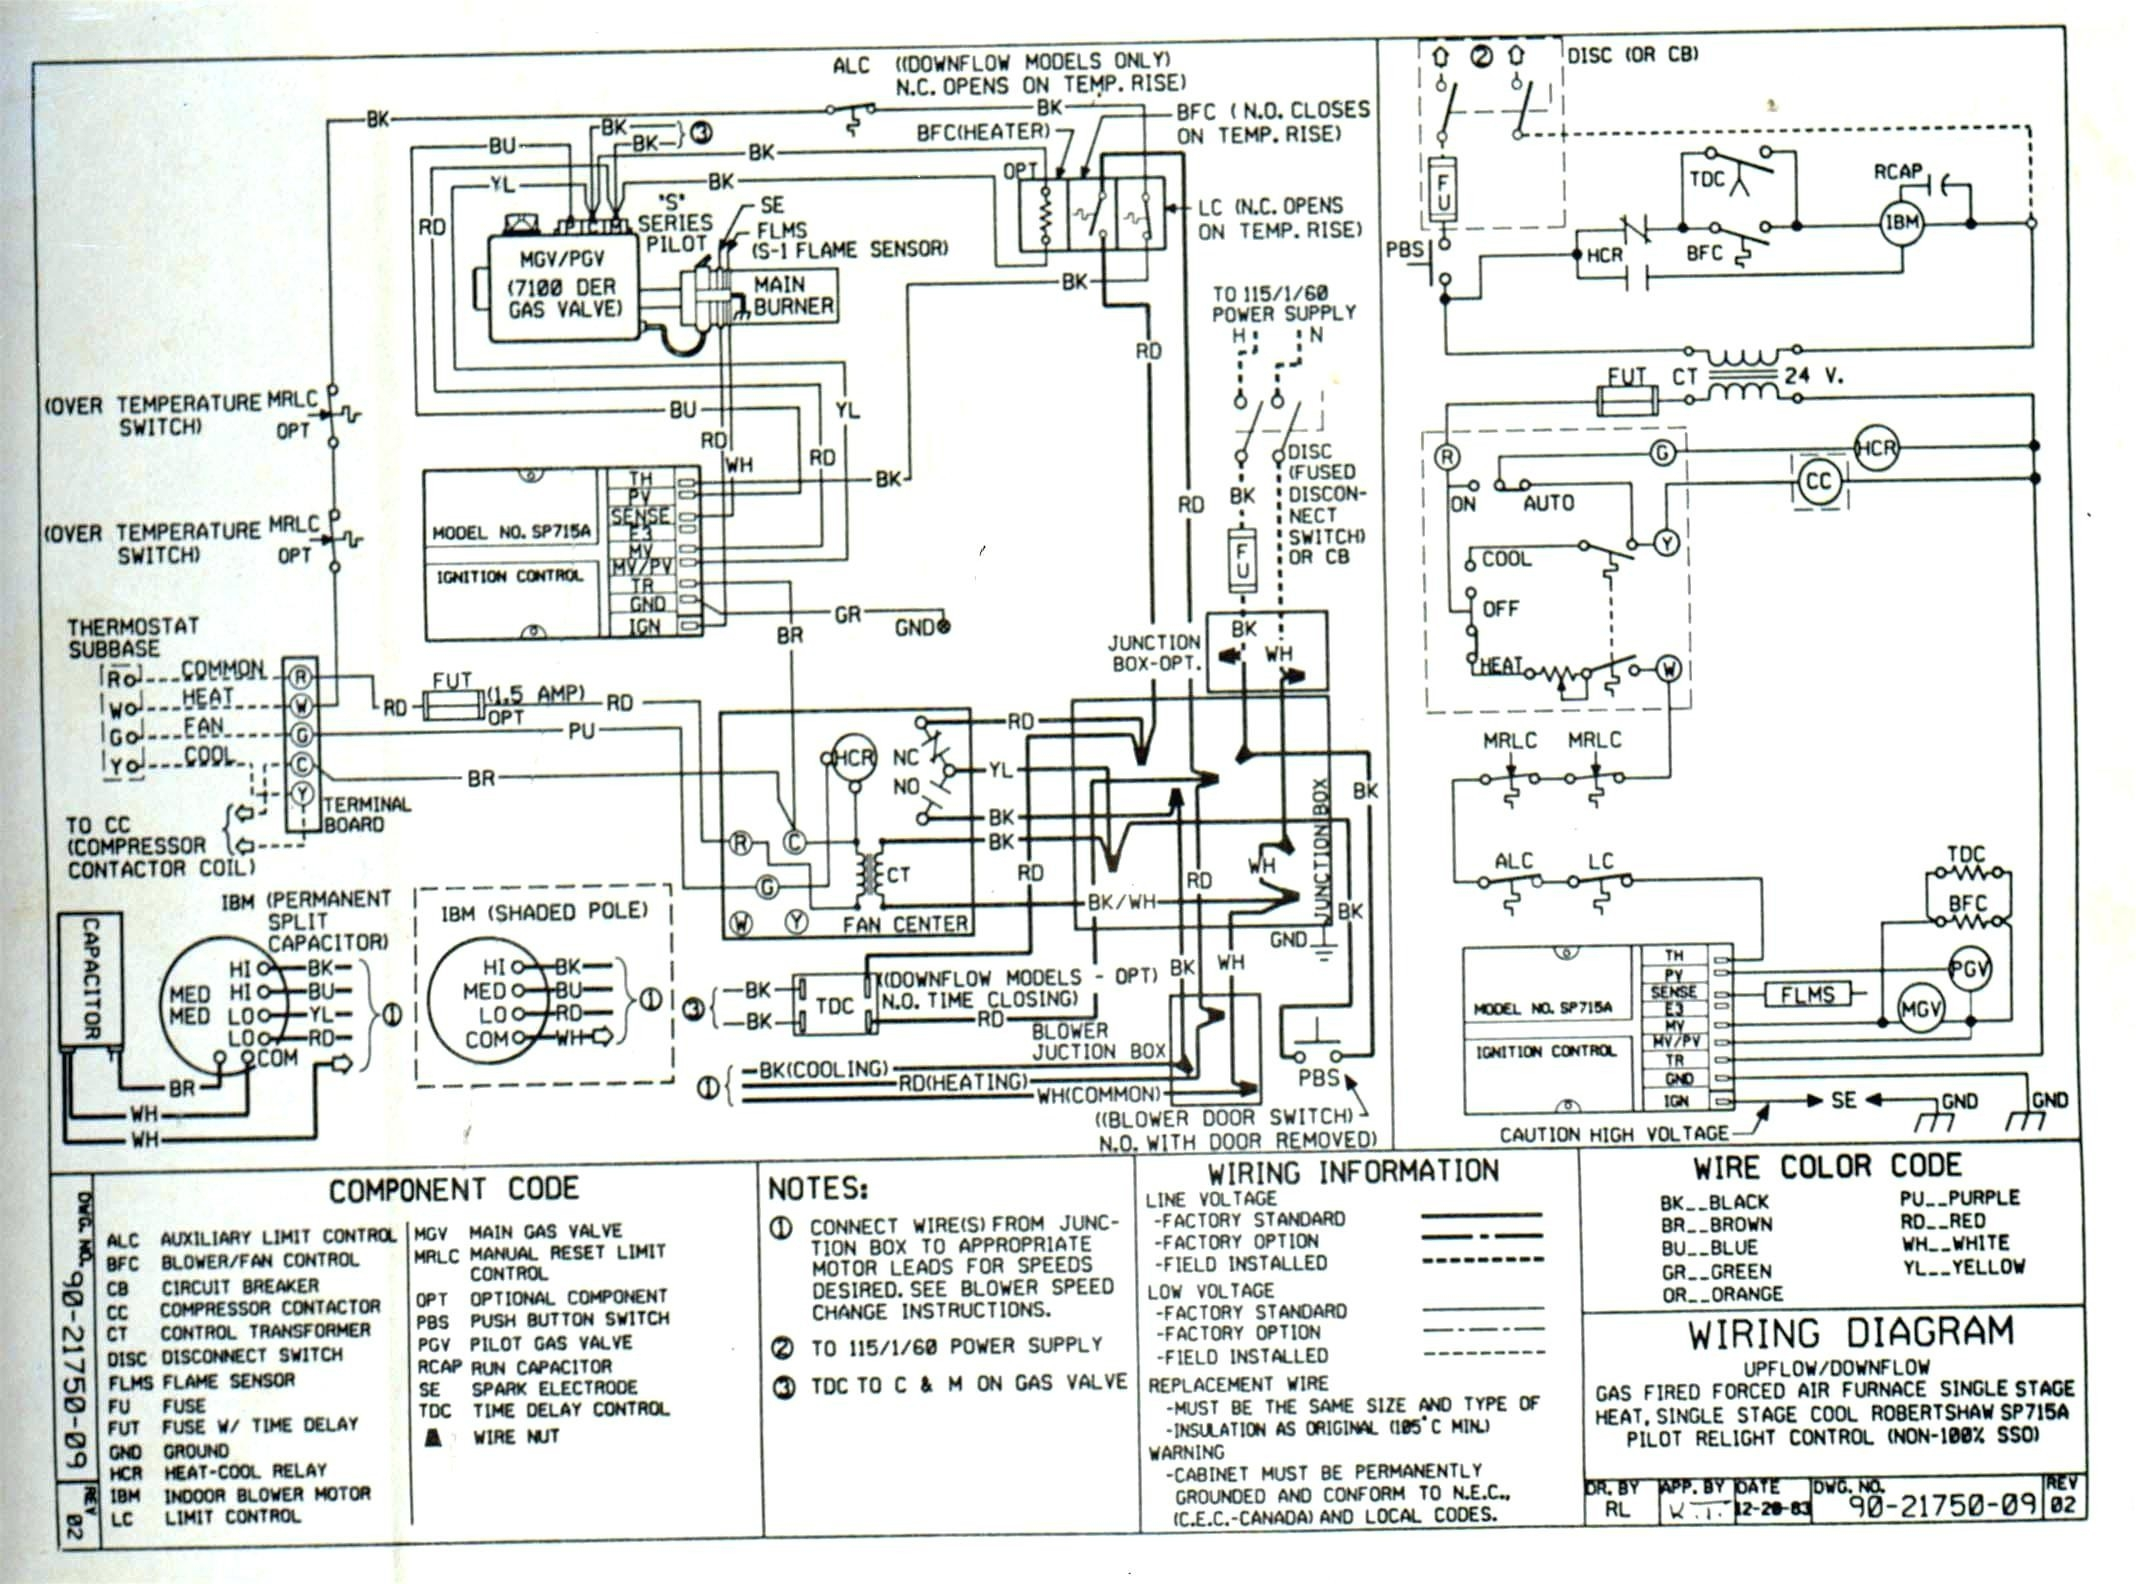 trane xv95 thermostat wiring diagram Download-Trane Xv95 Thermostat Wiring Diagram Download Electrical Best 15-c